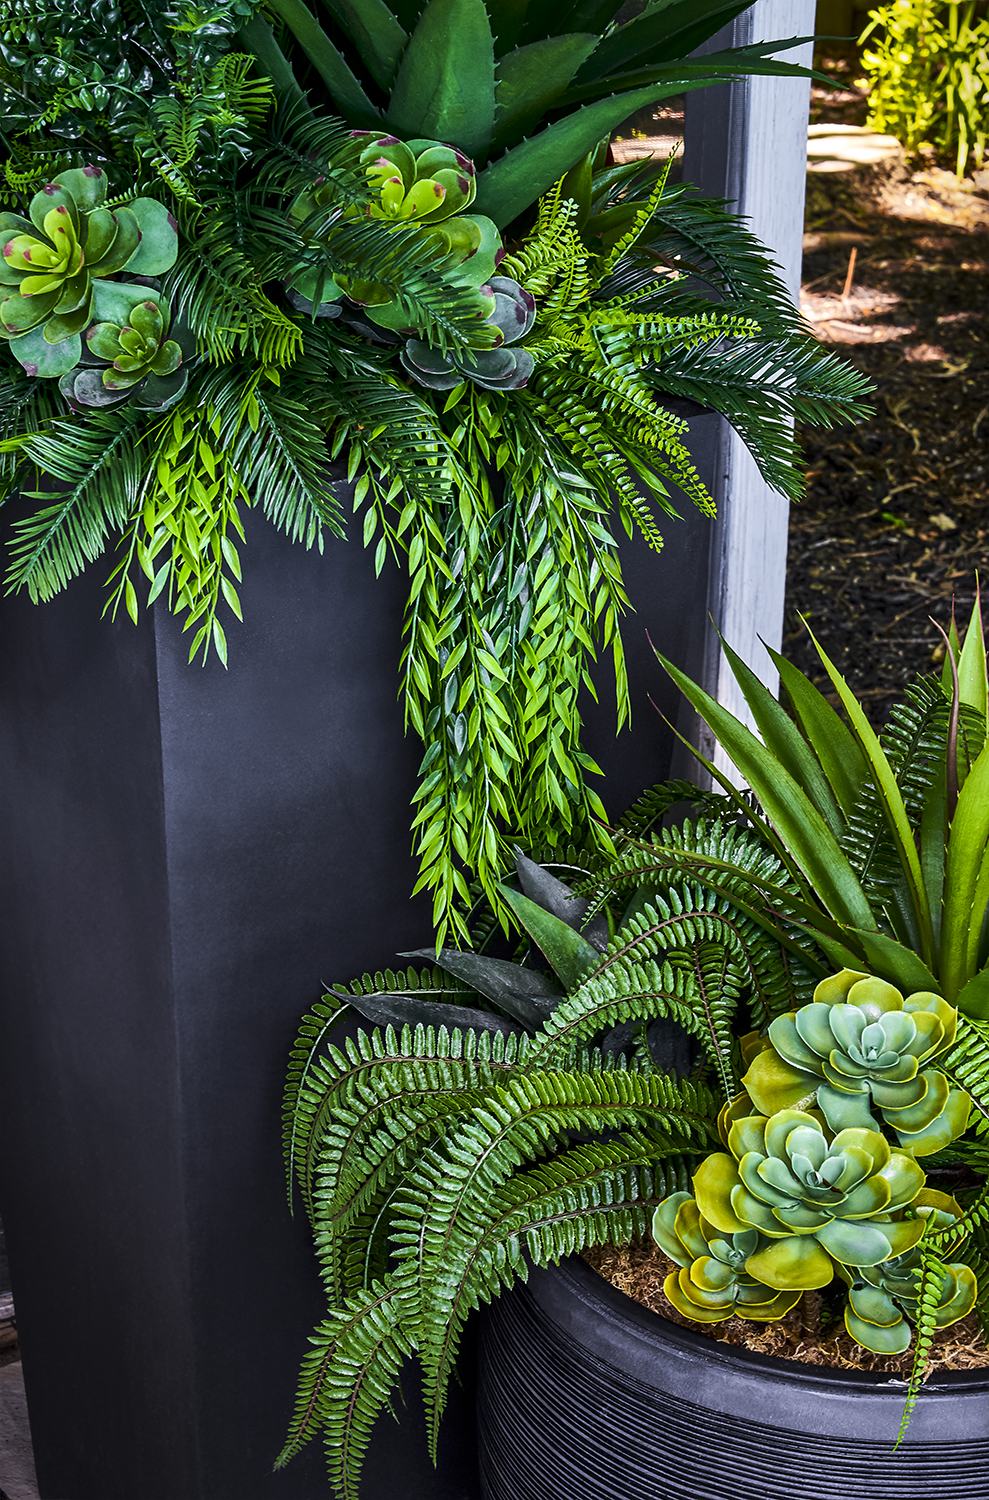 Everlasting exterior greenery and weather proof urns robustly created for the Client's Backyard Oasis